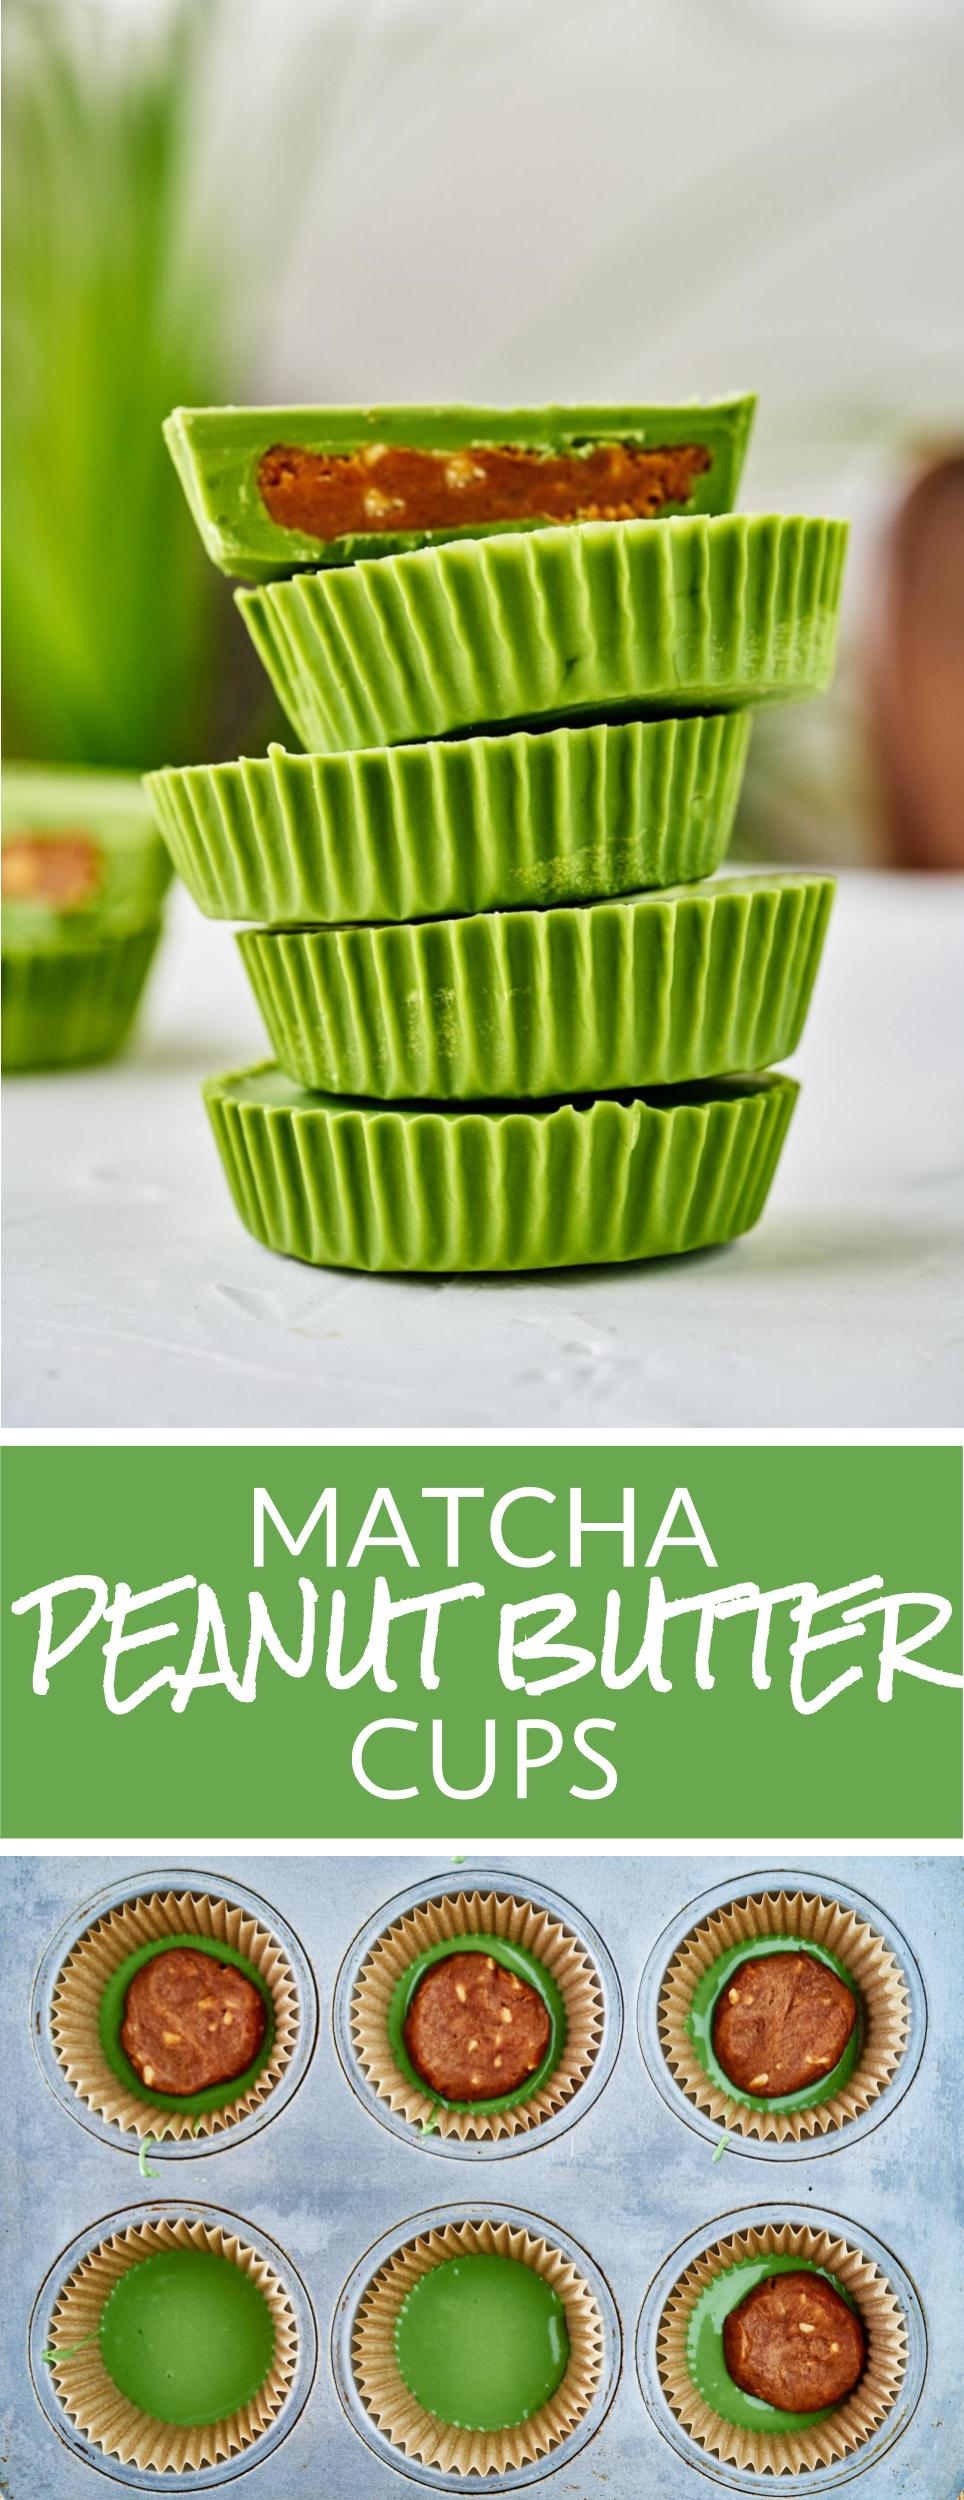 Matcha Peanut Butter Cups | Proportional Plate